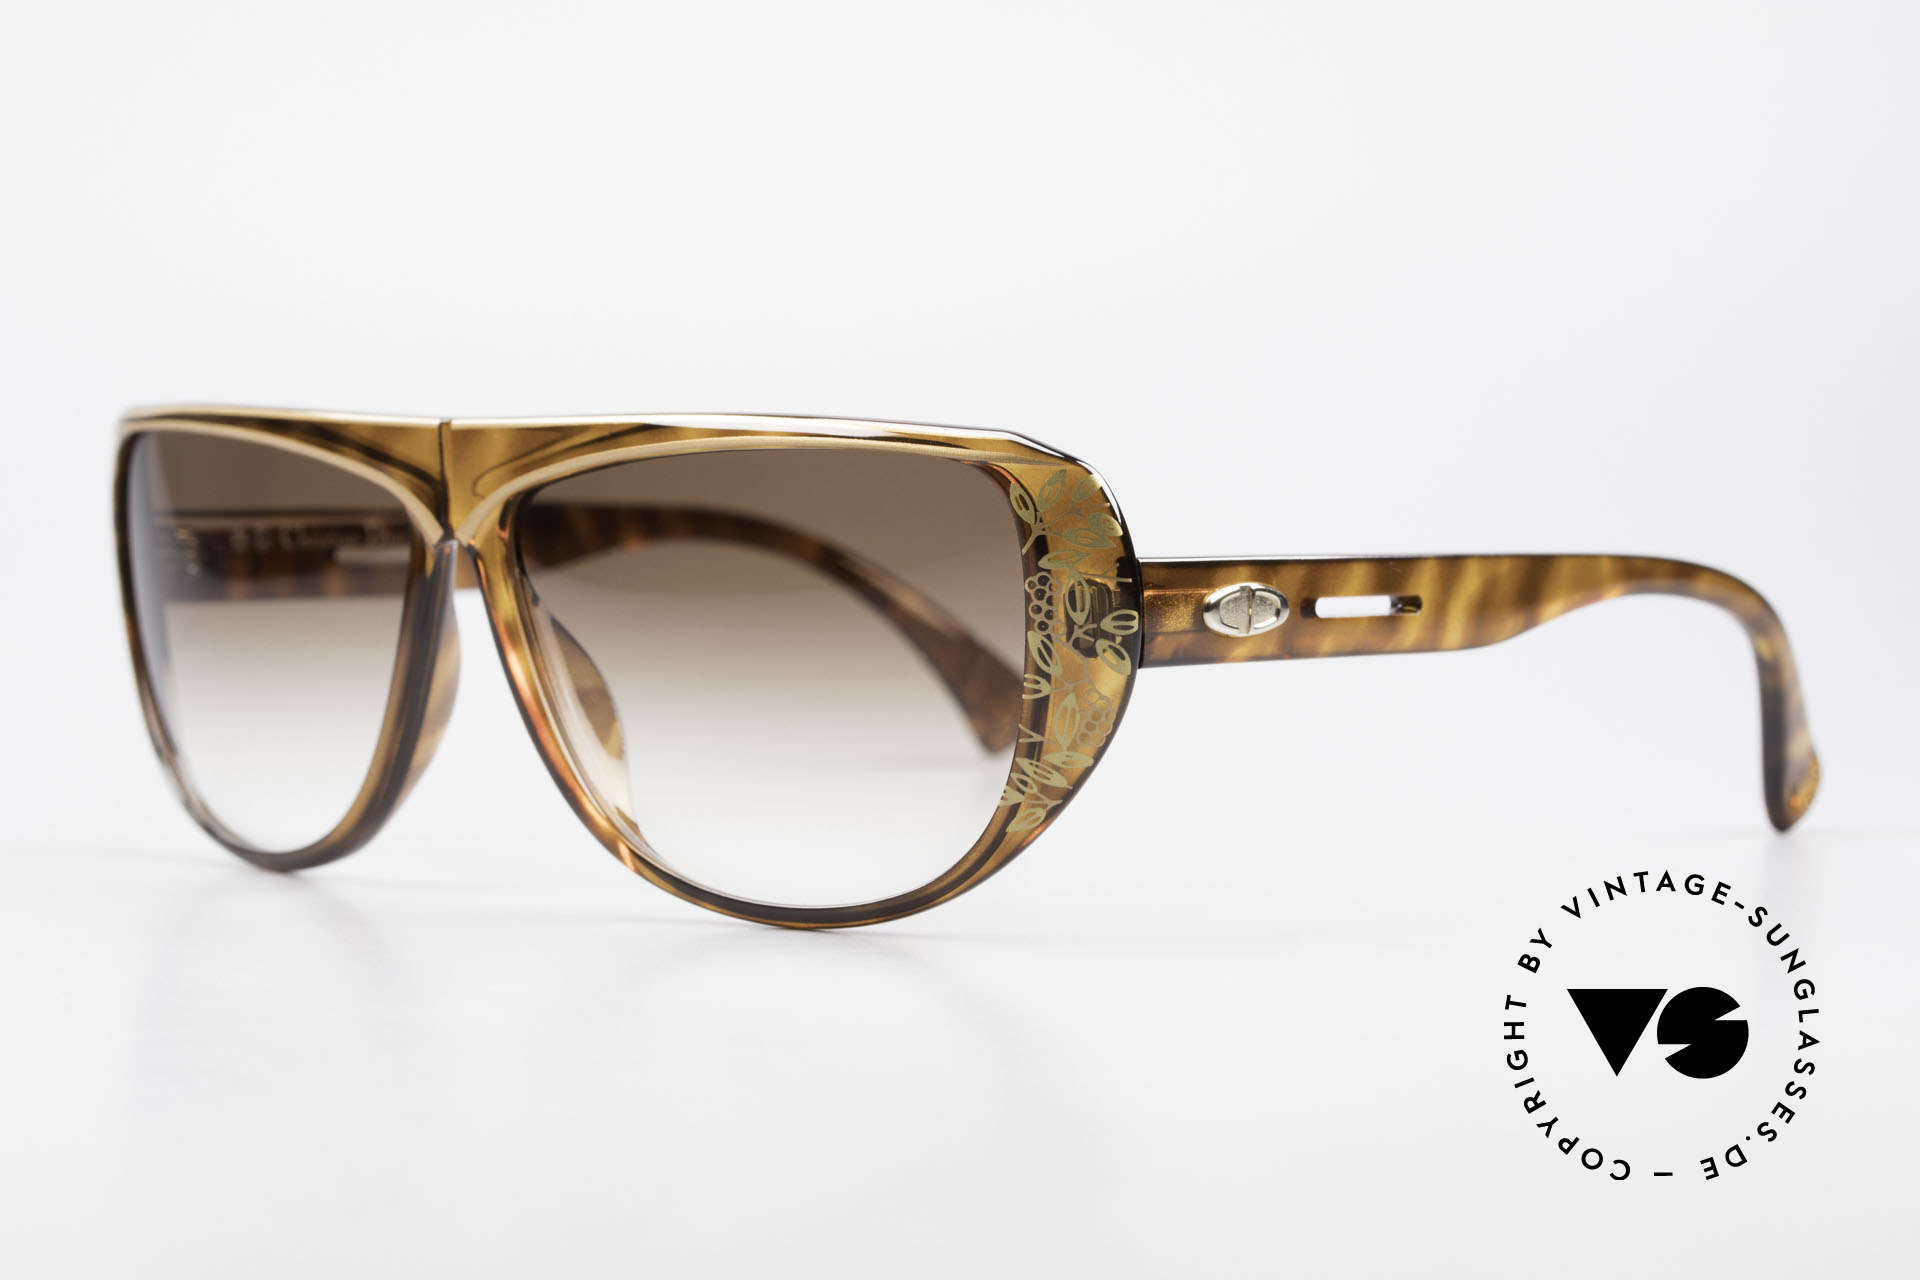 Christian Dior 2421 Ladies Sunglasses 80's Rarity, the incredible OPTYL material does not seem to age, Made for Women